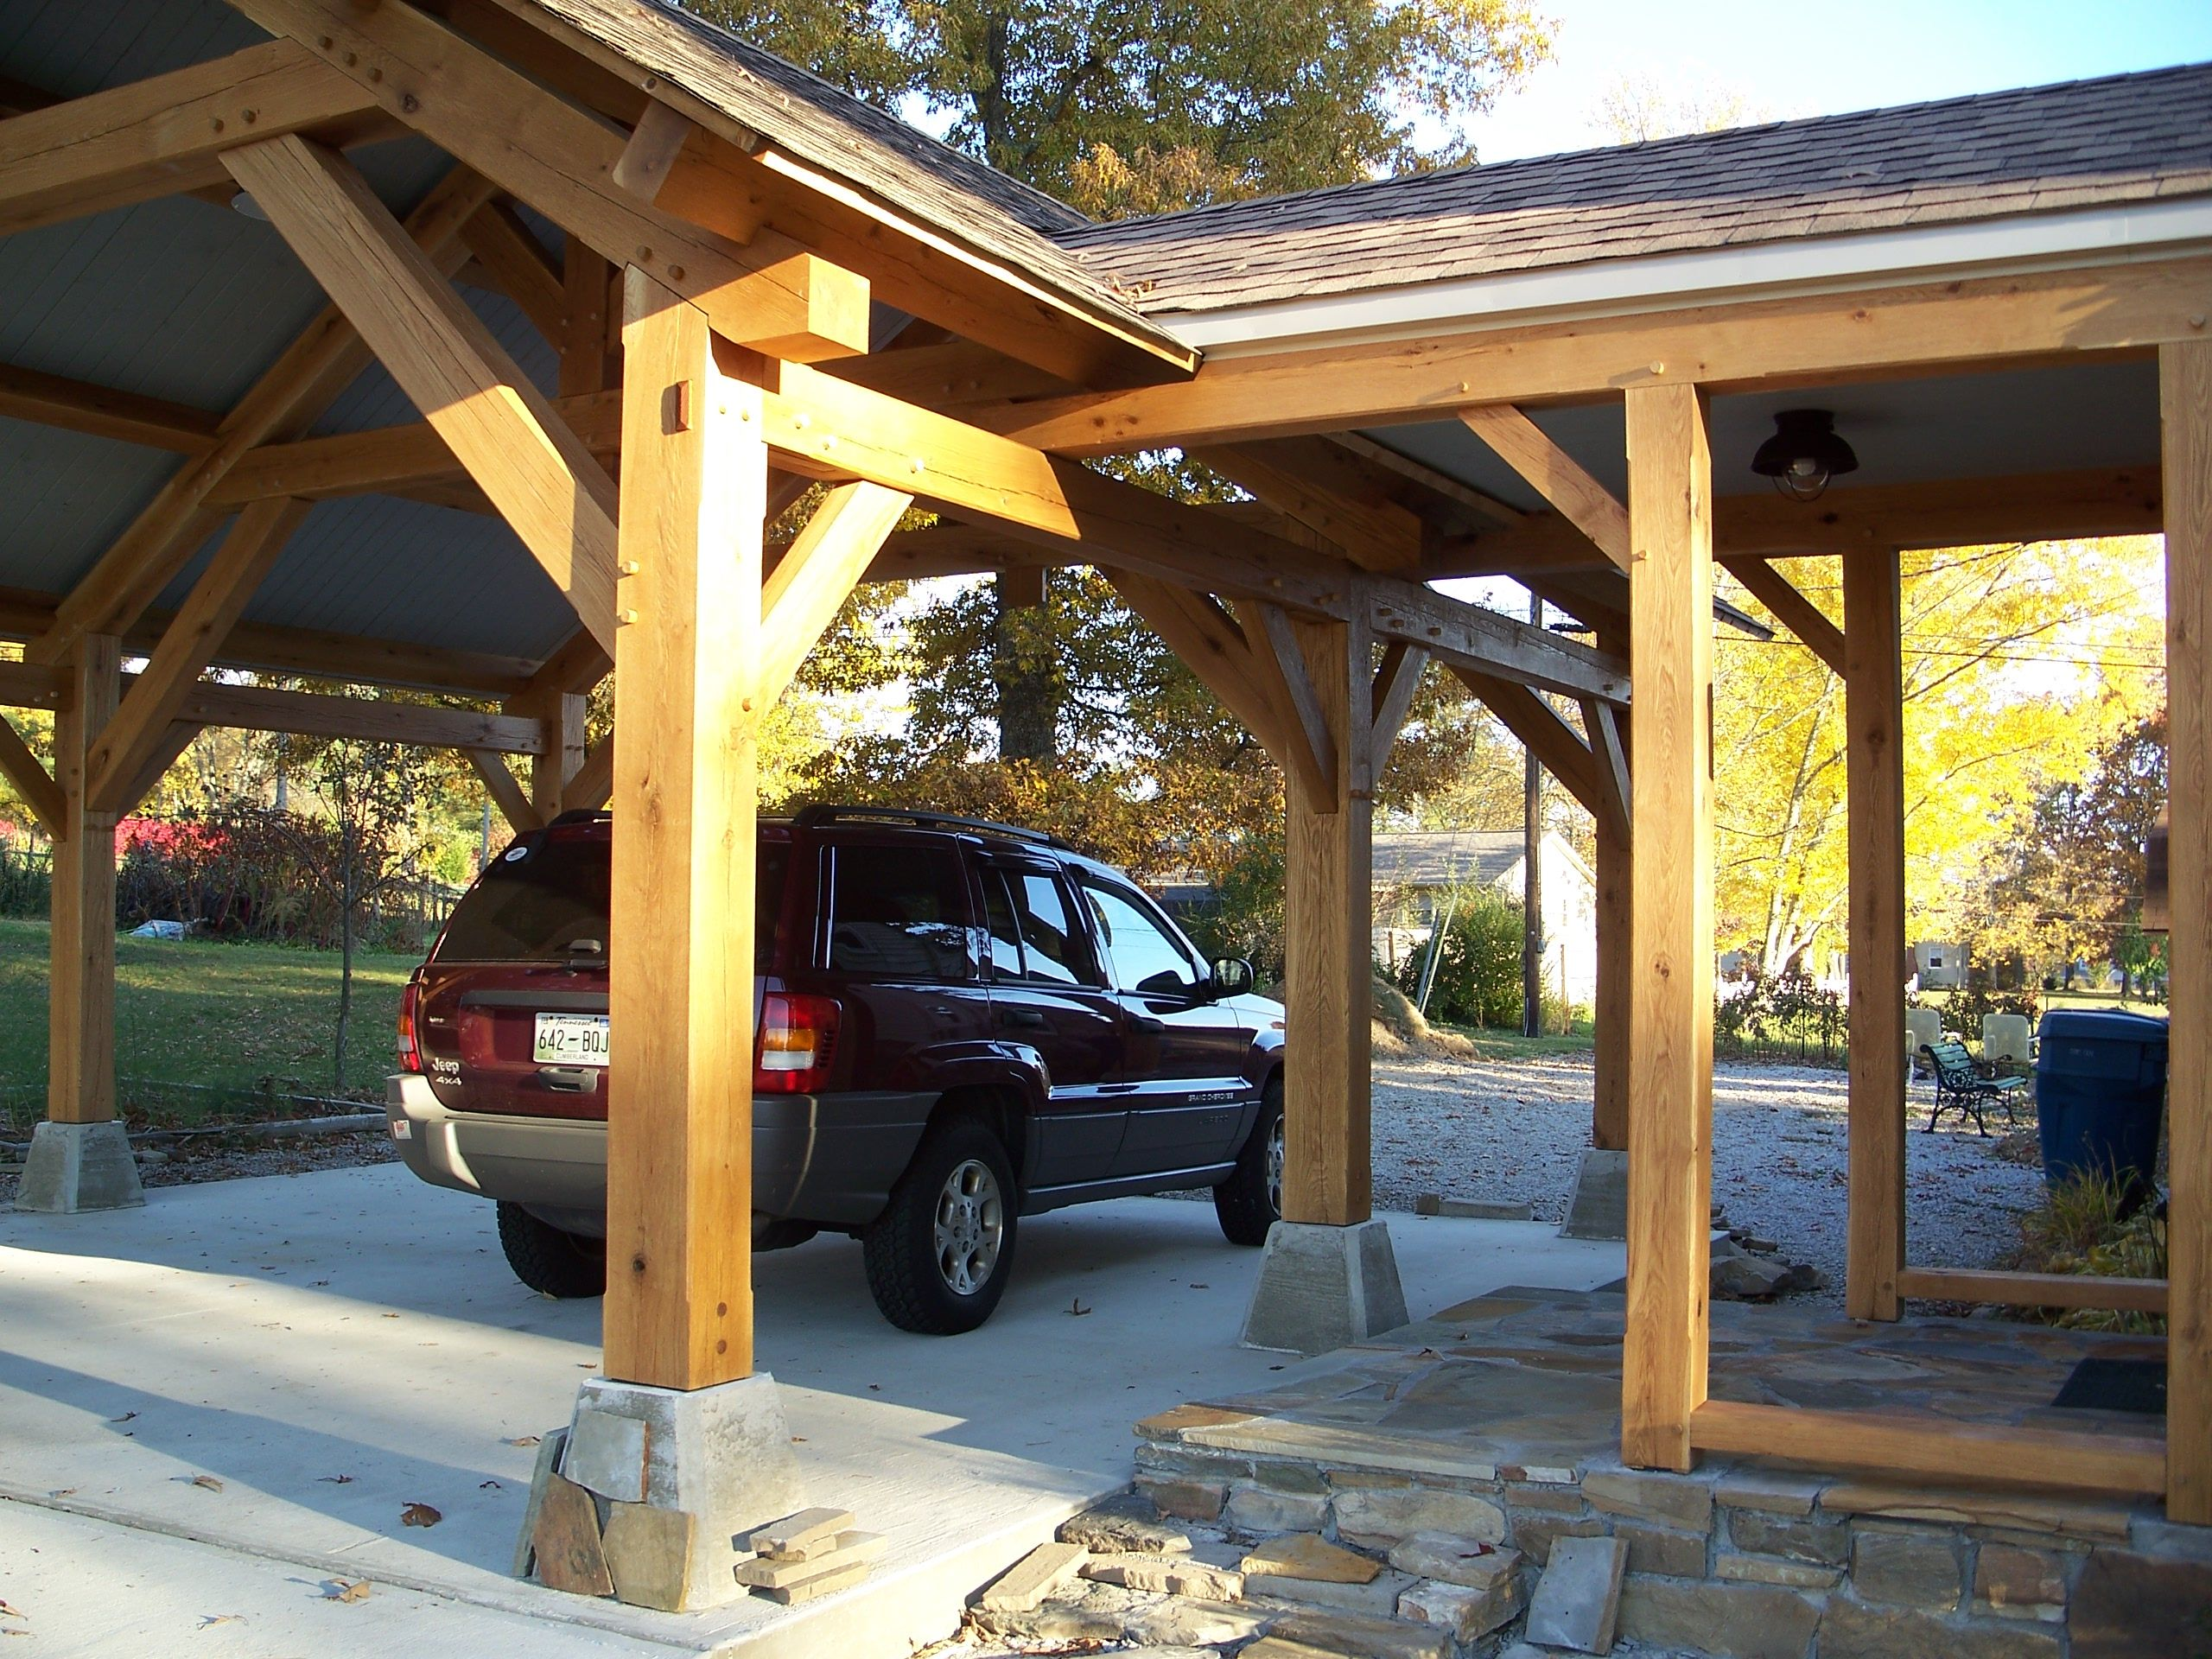 Le Meilleur Outdoor Living Timber Frame Pavilion Timber Frame Ce Mois Ci